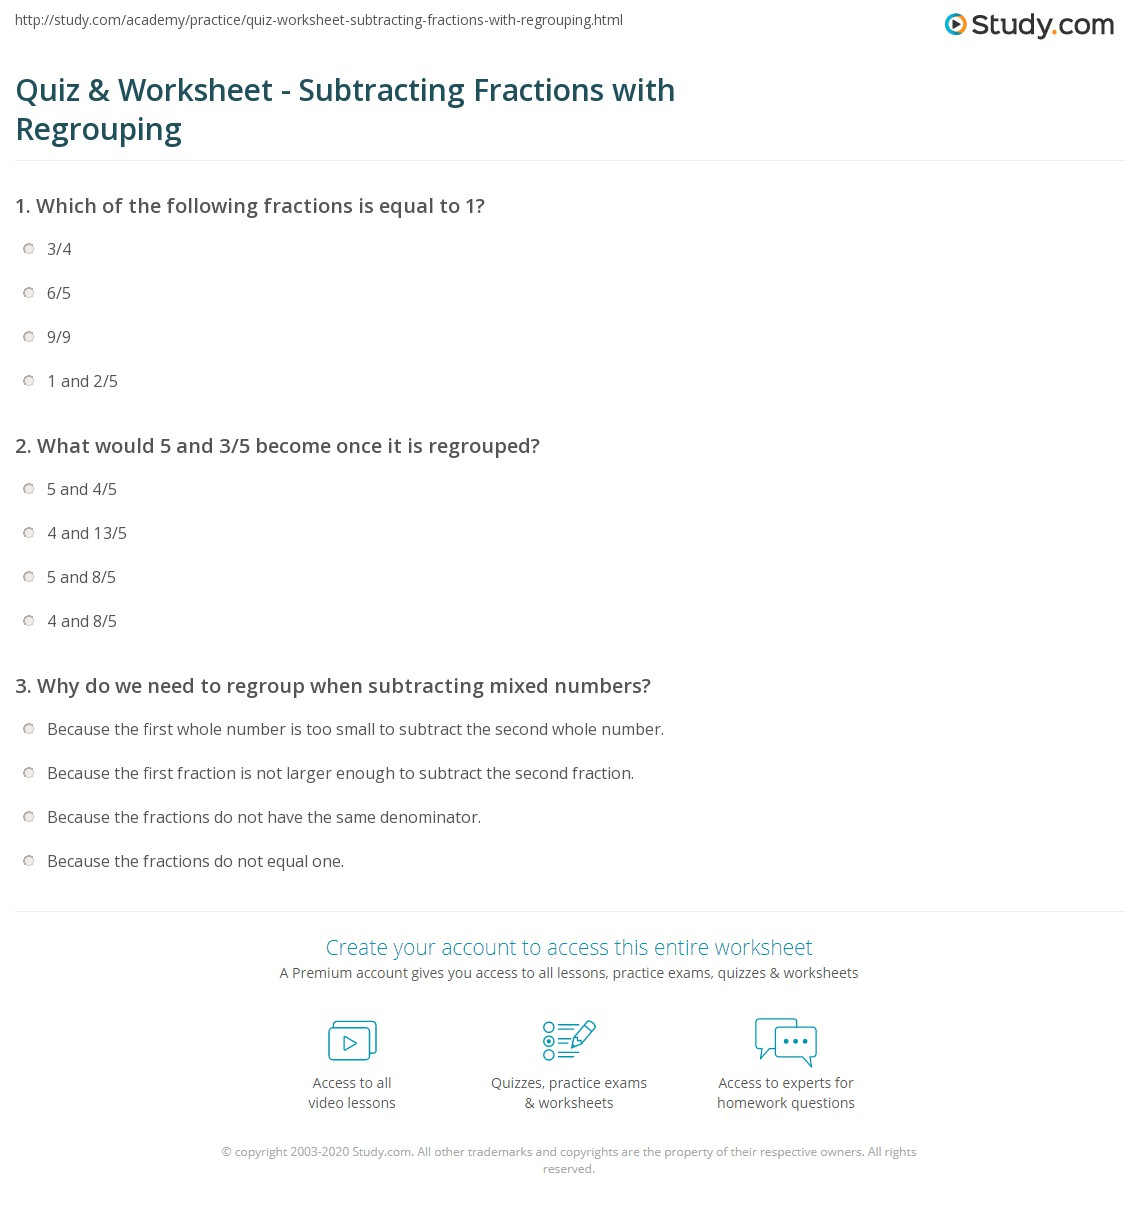 Quiz Worksheet Subtracting Fractions With Regrouping